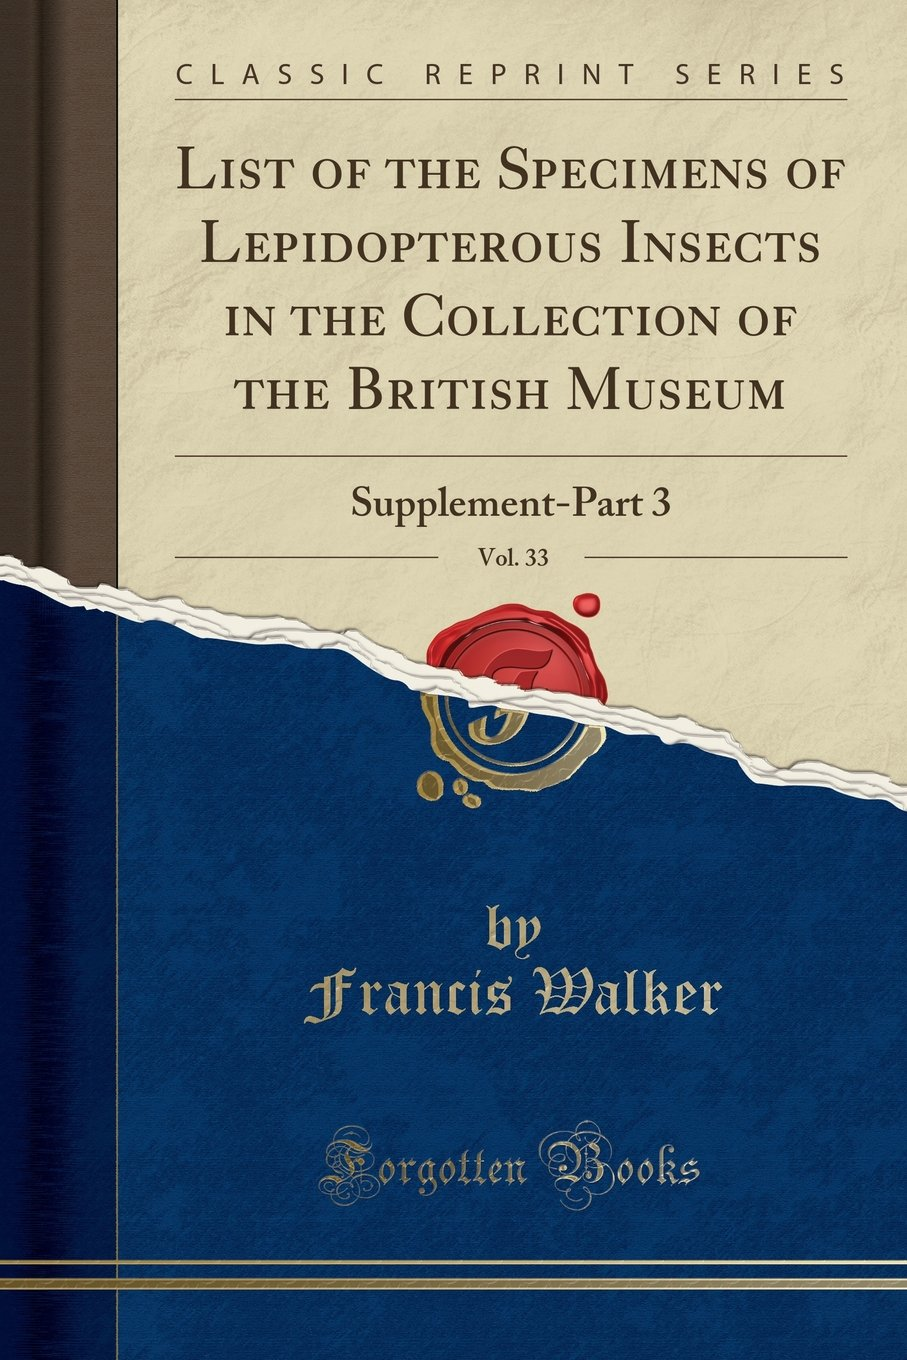 Download List of the Specimens of Lepidopterous Insects in the Collection of the British Museum, Vol. 33: Supplement-Part 3 (Classic Reprint) ebook